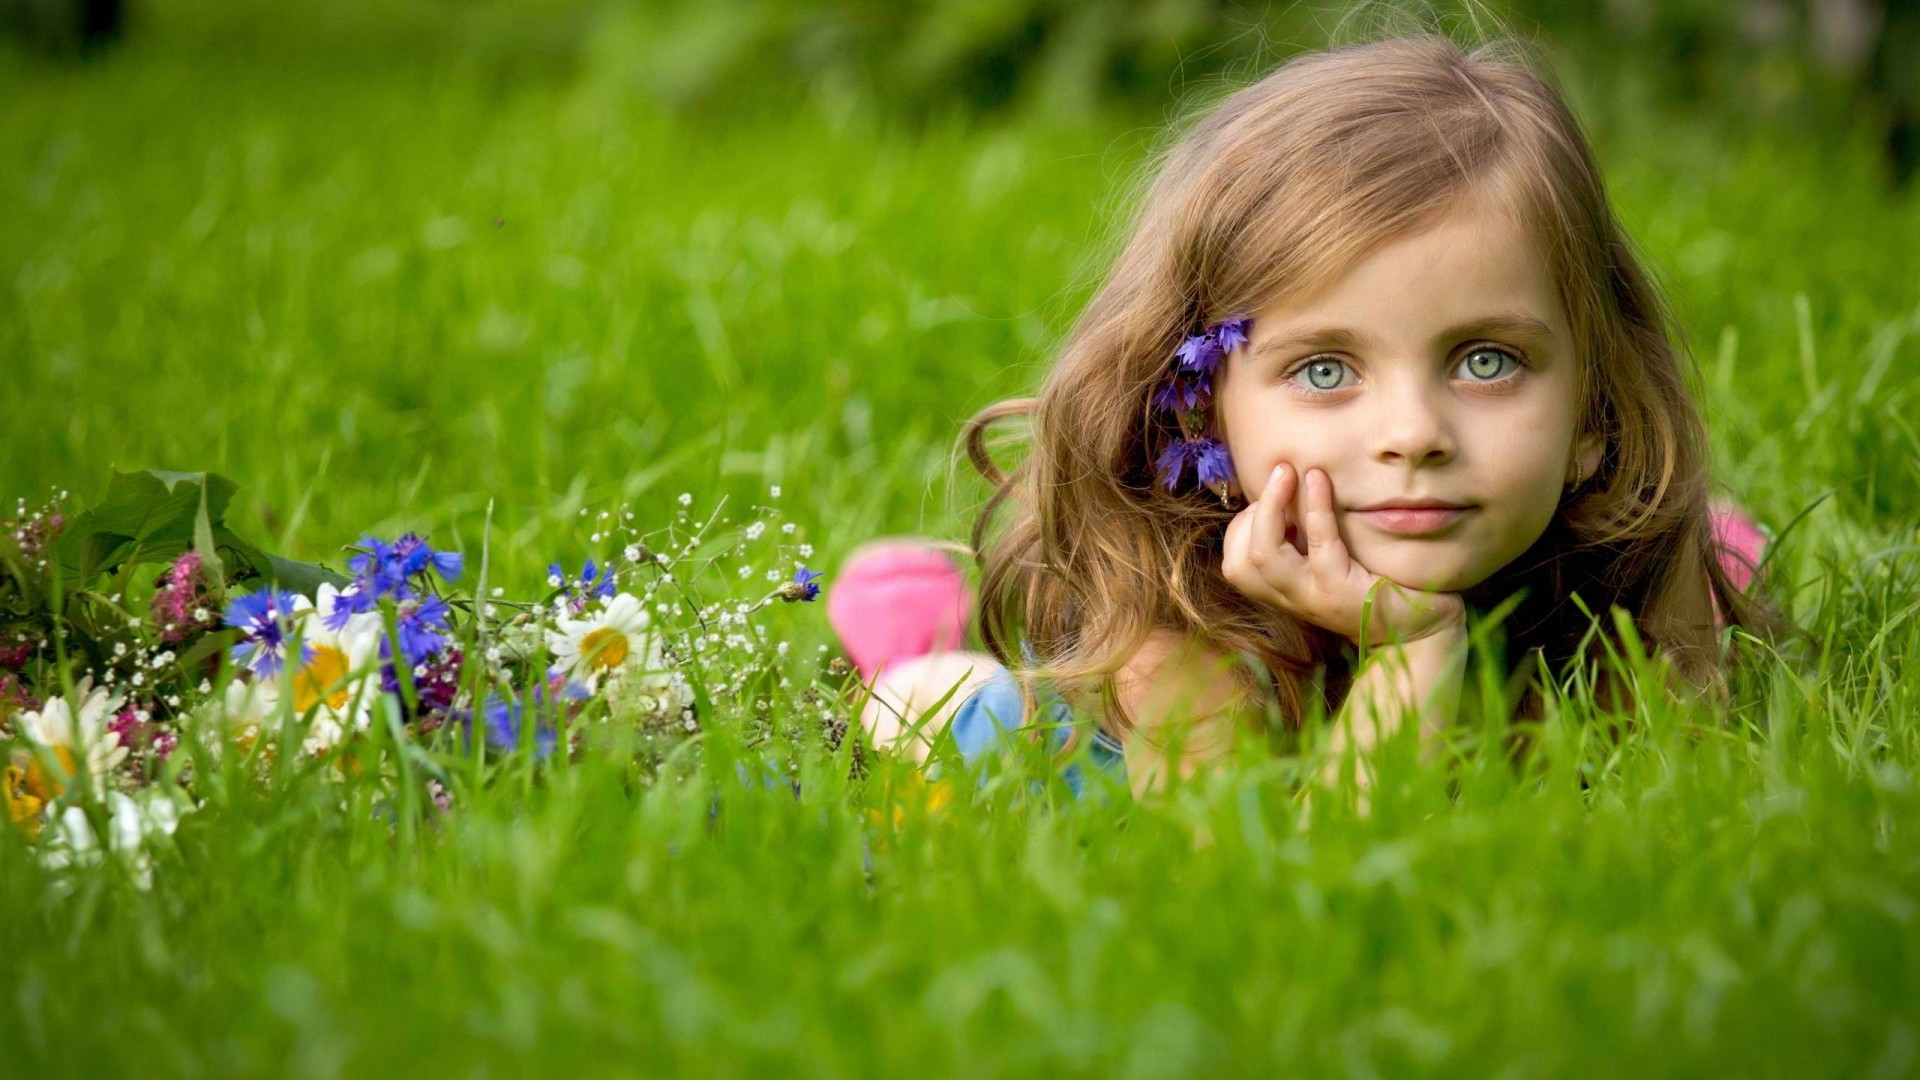 cute baby wallpapers with quotes (53+ images)